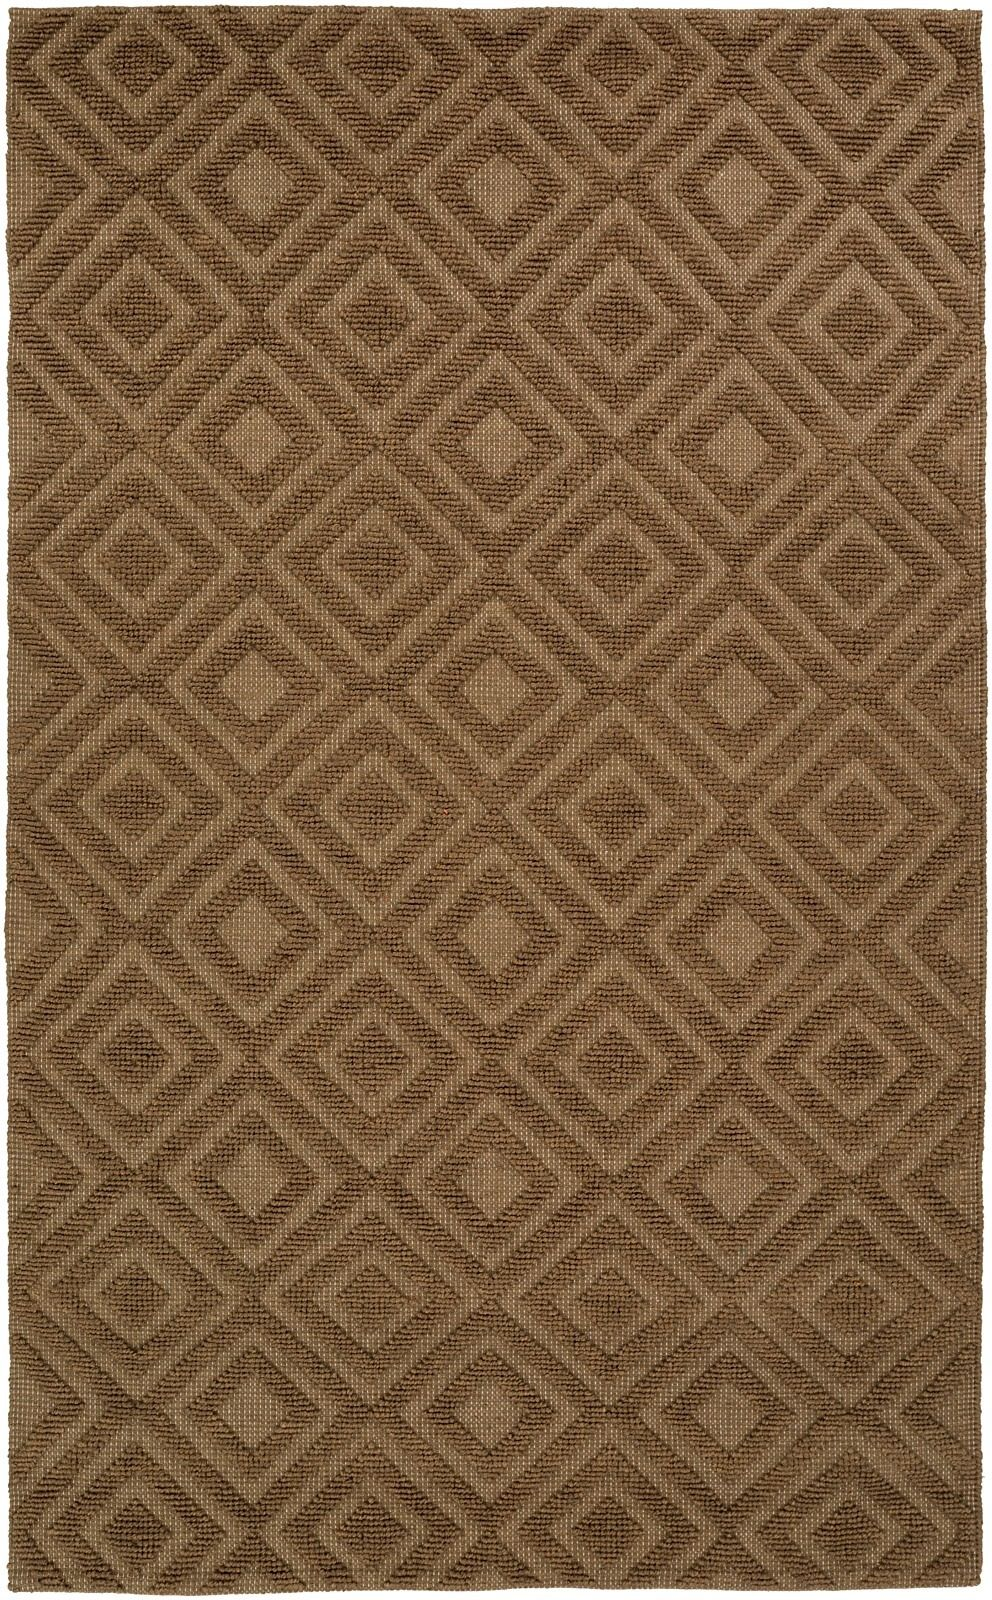 surya lake shore natural fiber area rug collection